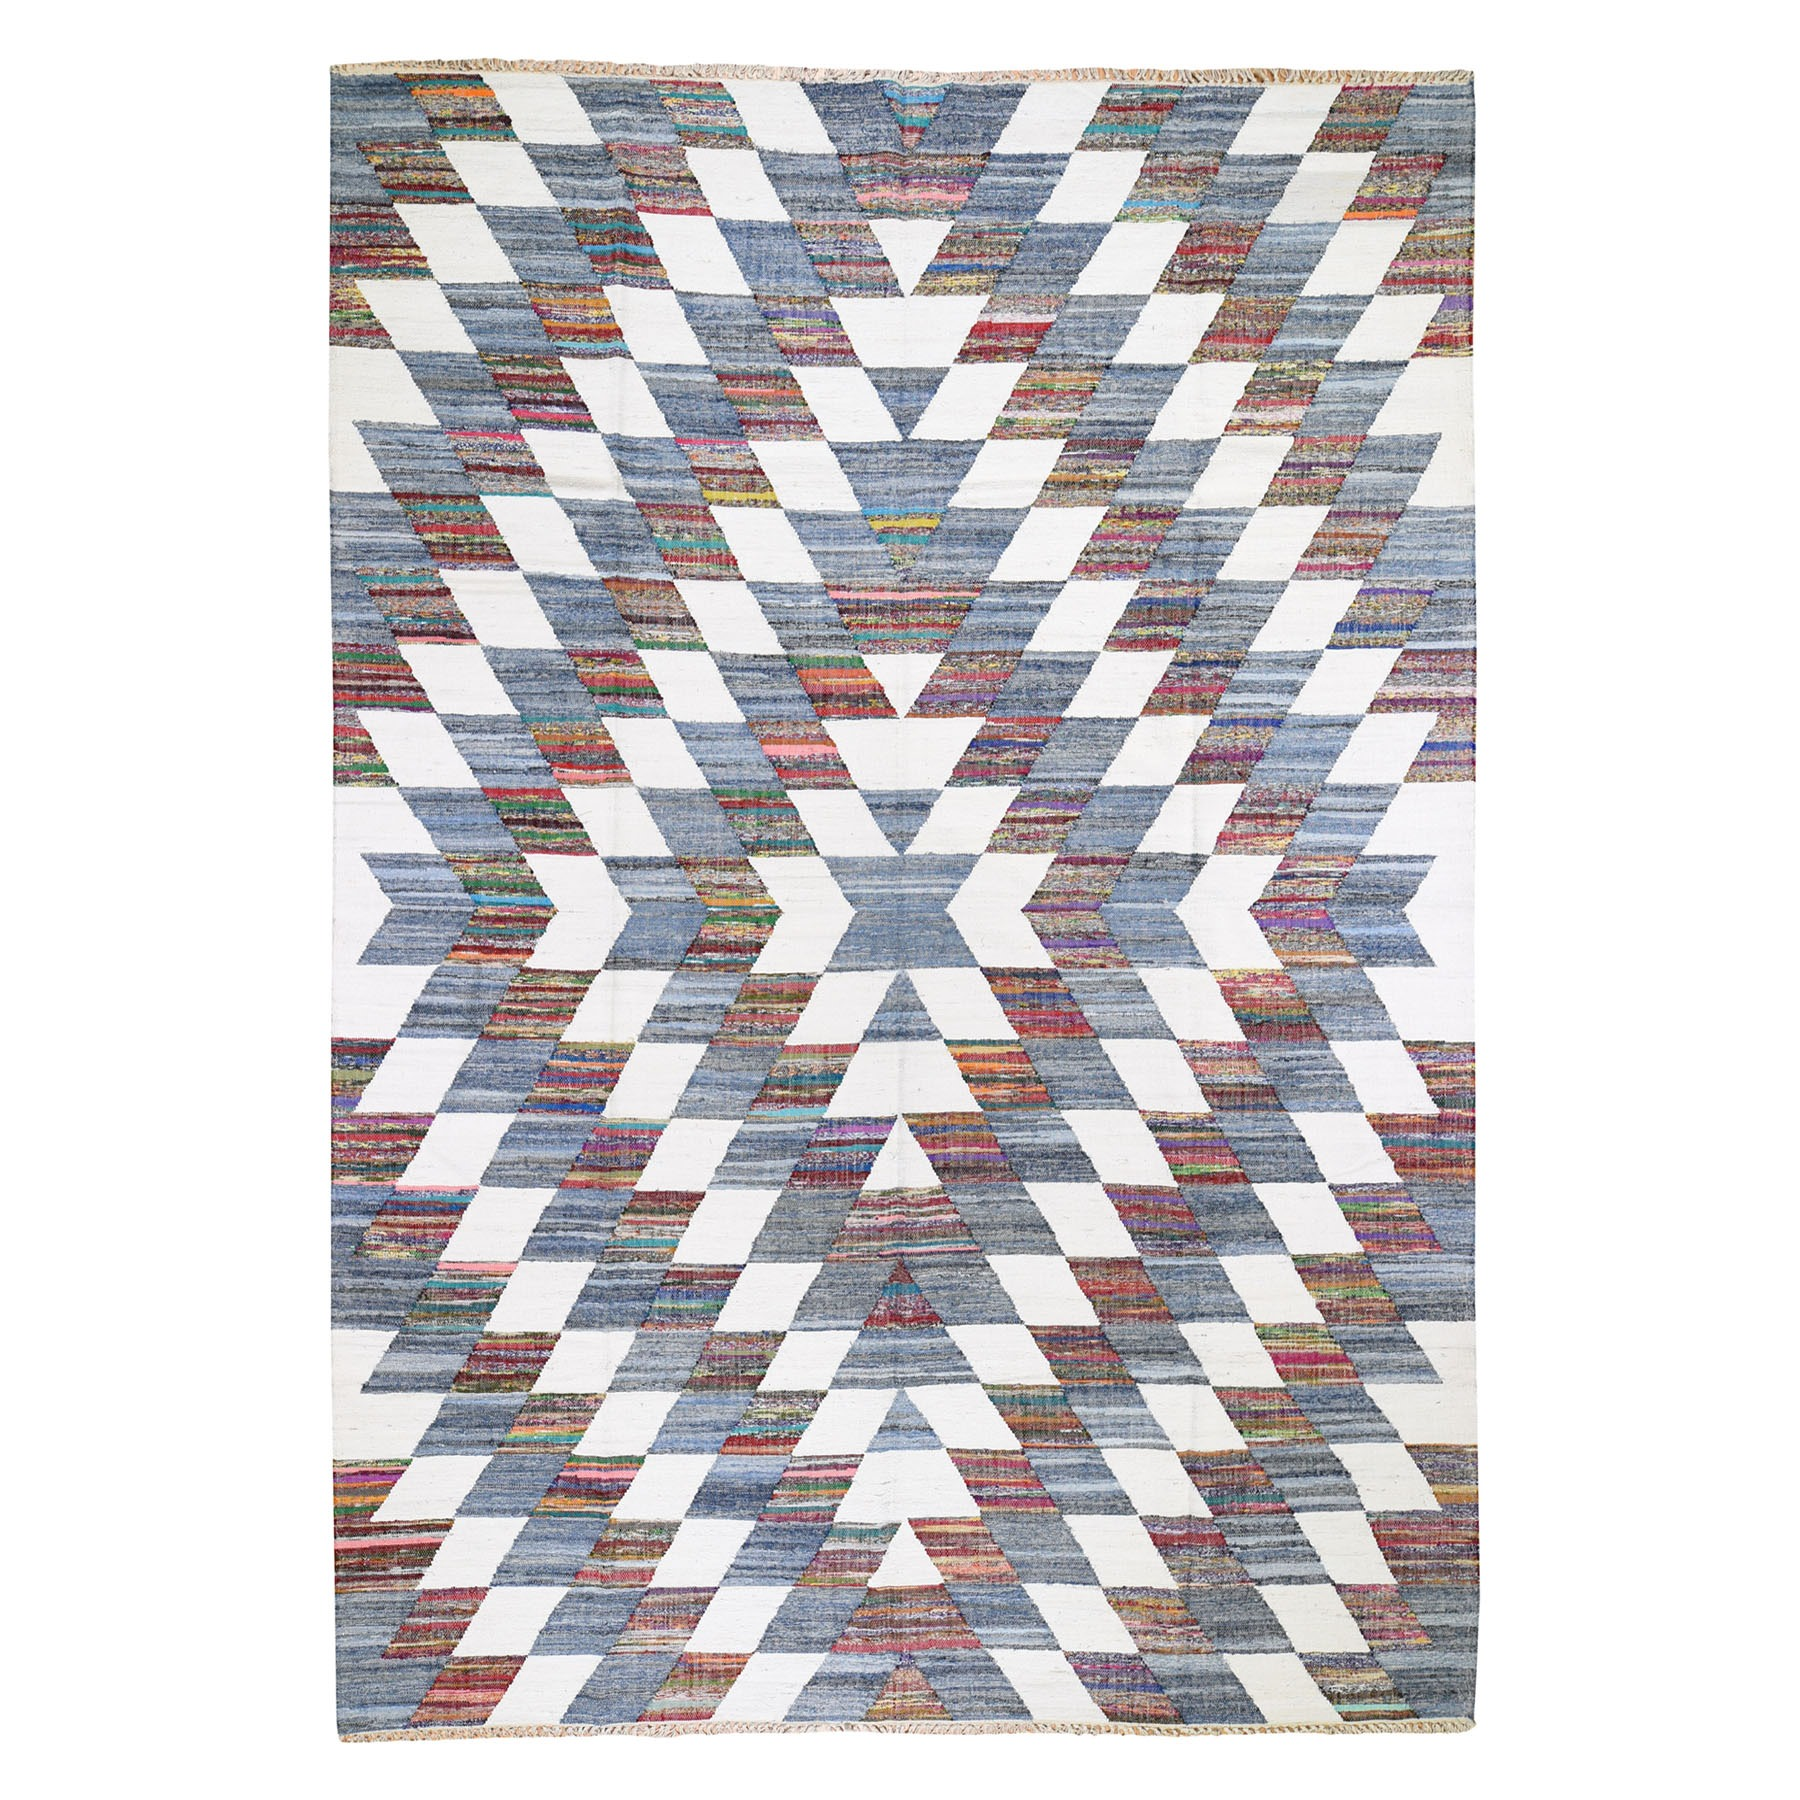 "9'8""x14' Hand-Woven Geometric Cotton And Sari Silk Durie Kilim Oriental Rug"